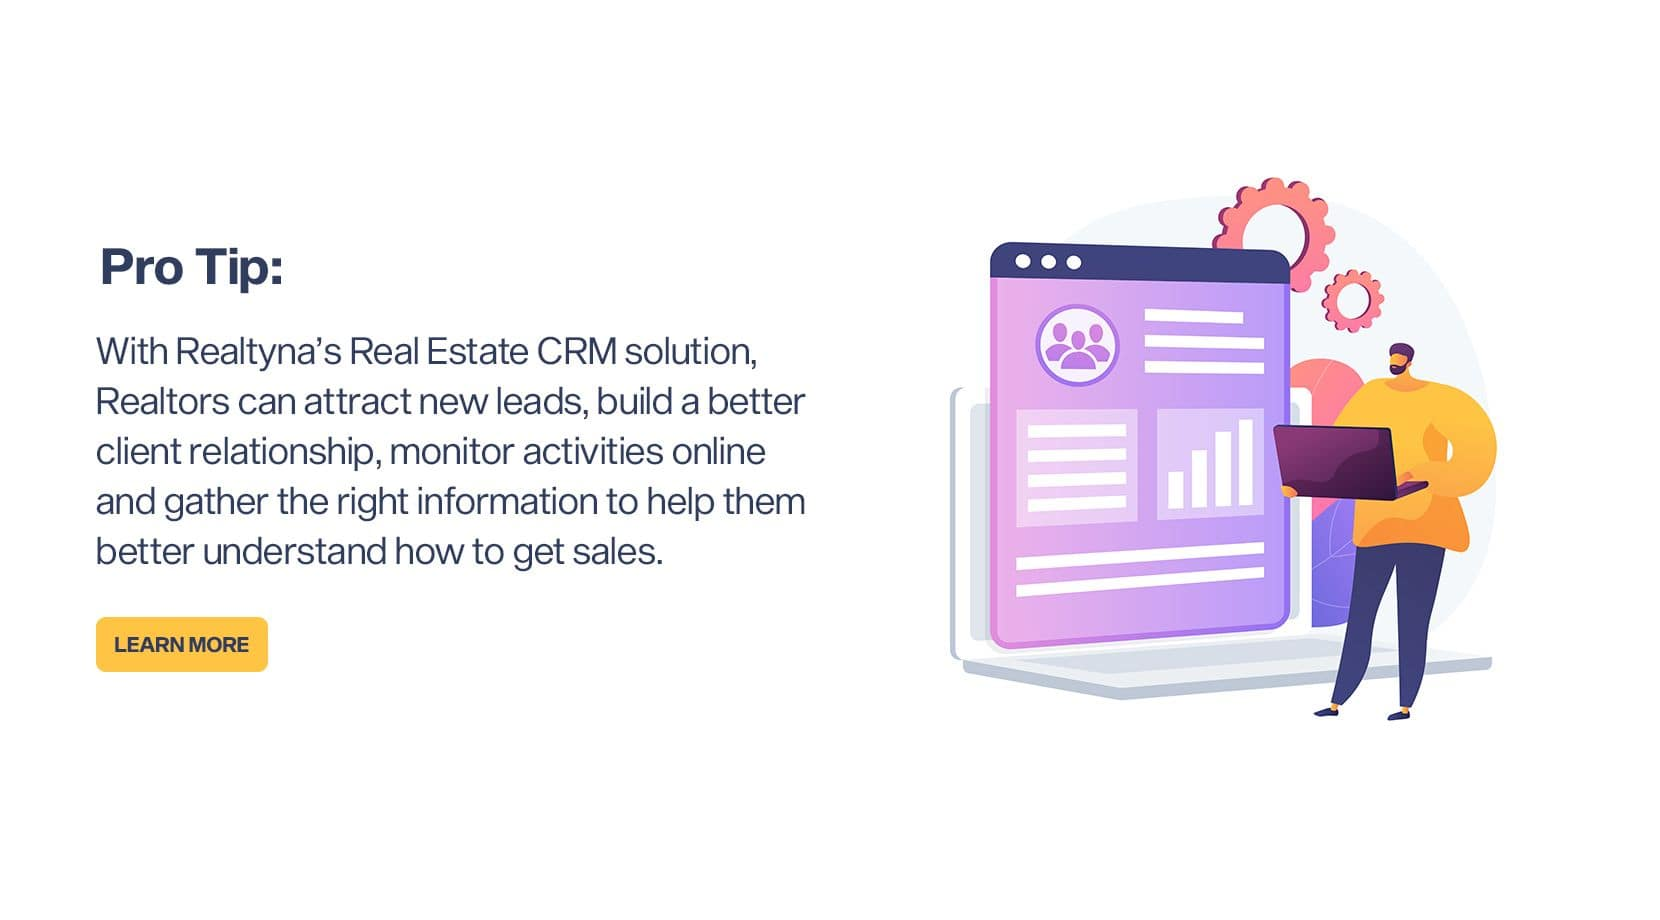 Pro Tip: With Realtyna's Real Estate CRM solution, Realtors can attract new leads, build a better client relationship, monitor activities online and gather the right information, and to better understand how to get sales.